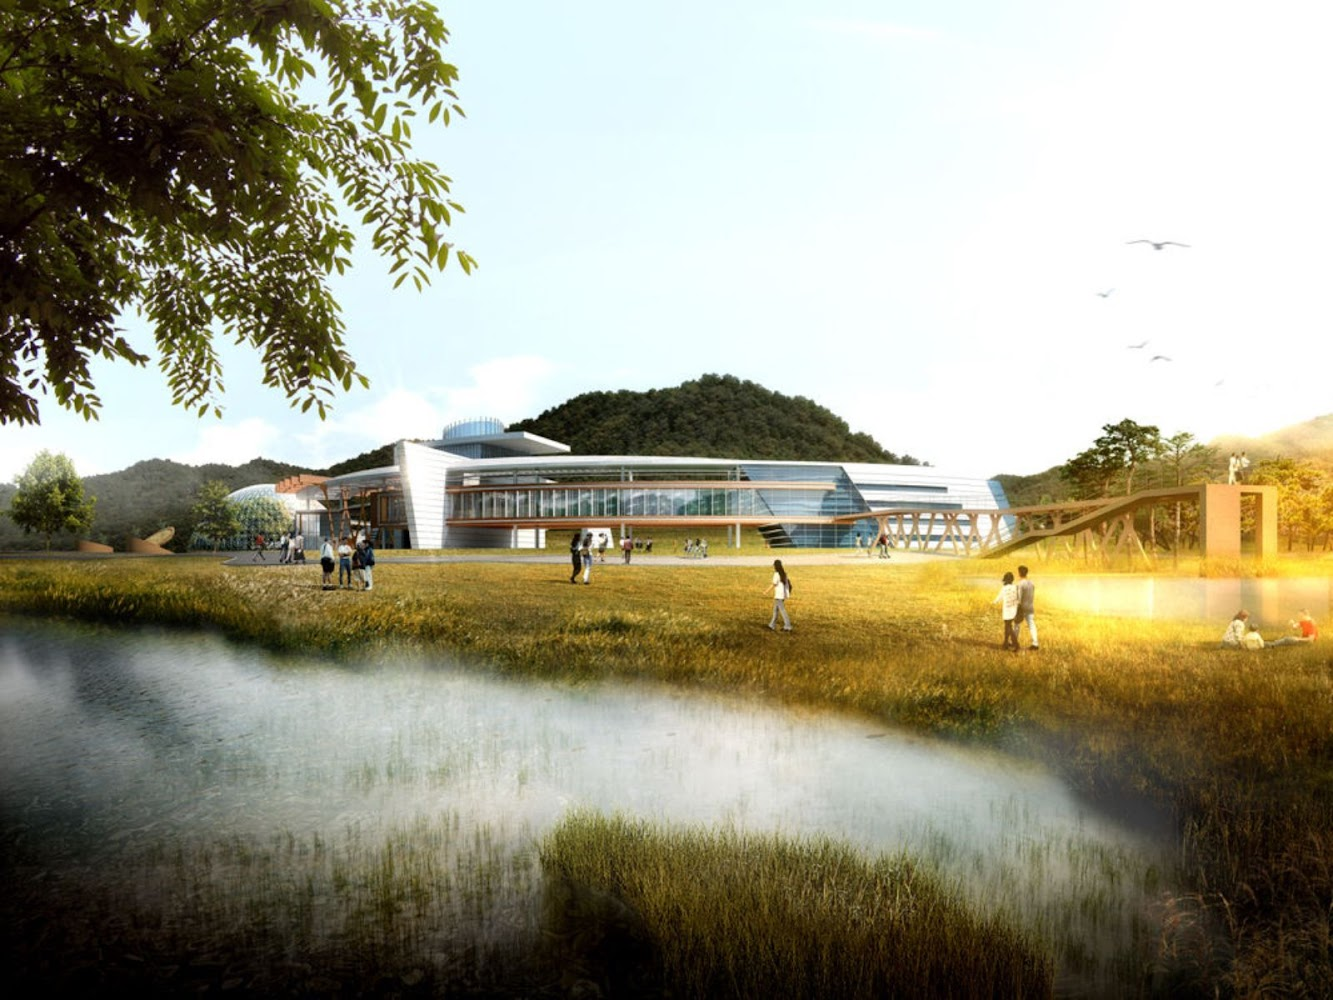 National Research Center for Endangered Species by SAMOO